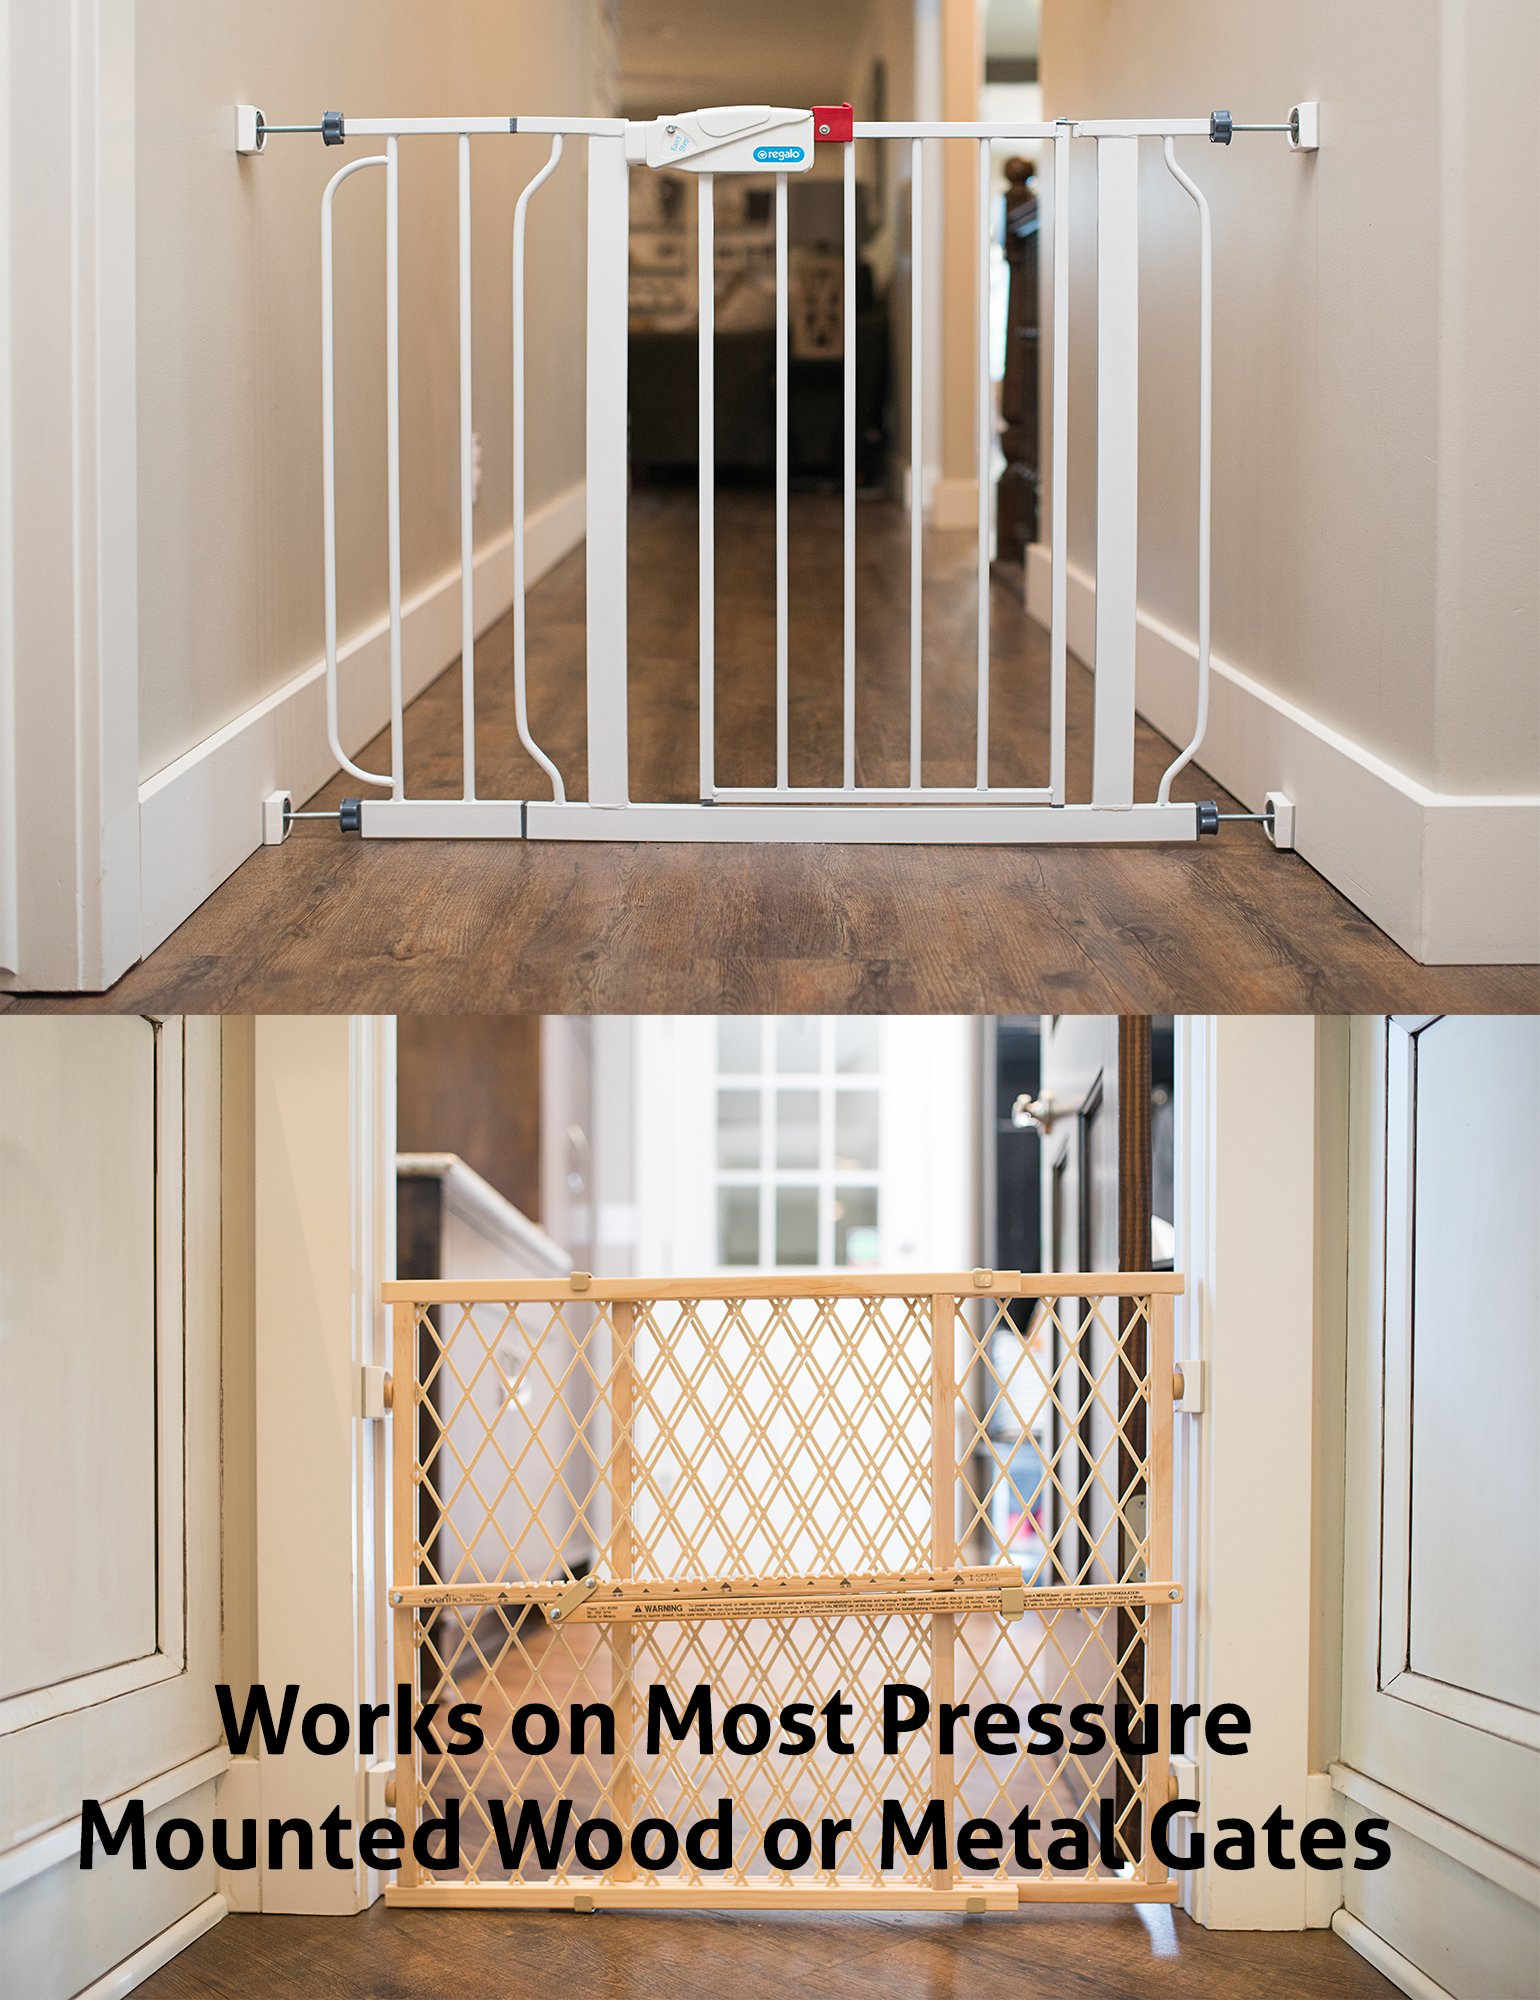 Wall Nanny Mini - Baby Gate Wall Protector (Made in USA) for Dog & Pet Gates - Small Low-Profile Saver - Perfect in Doorways - Cups Protect & Guard Walls from Kid Child Safety Pressure Gates - 4 Pack by Wall Nanny (Image #6)